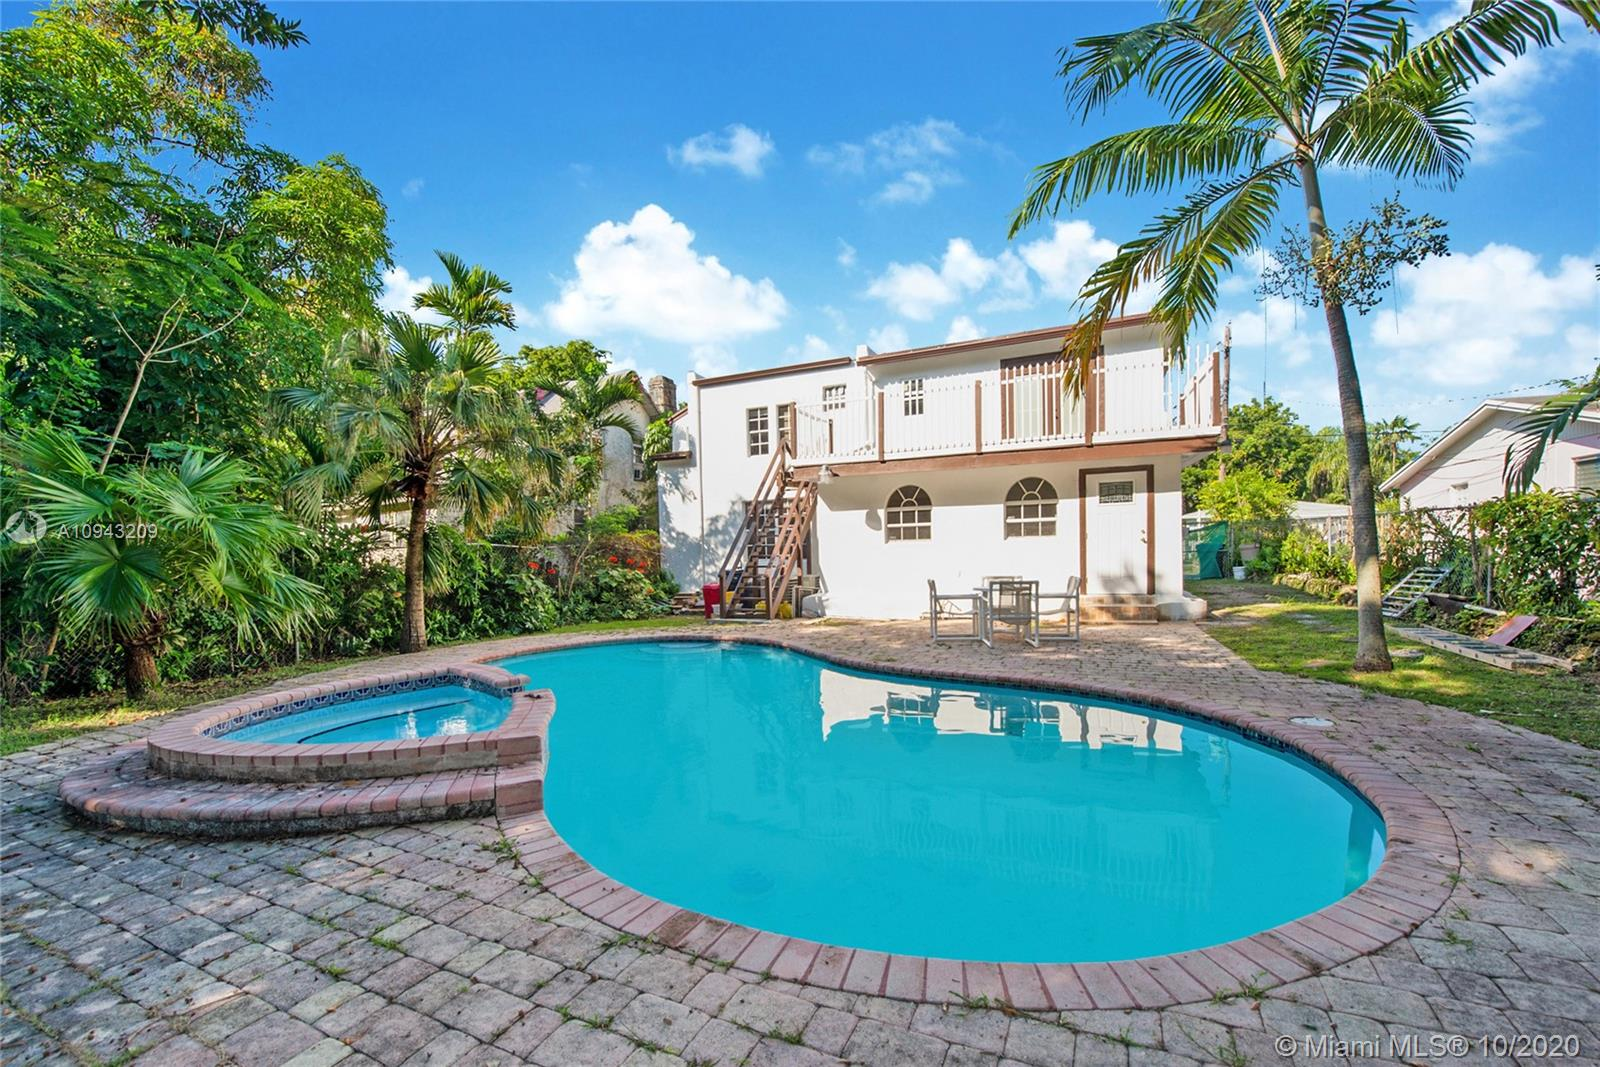 Completely renovated 4Bed/3Bath+pool in South Miami. This home features a brand new kitchen with gas range, NEW ROOF, new bathrooms including master, 2 new A/C units. Additionally, this master piece provides an open floorplan with comfortably living space, large bedrooms, large walking master closet, sparkling pool, and a terrace adjacent to the master bedroom. Centrally located. Call or text Listing agent.